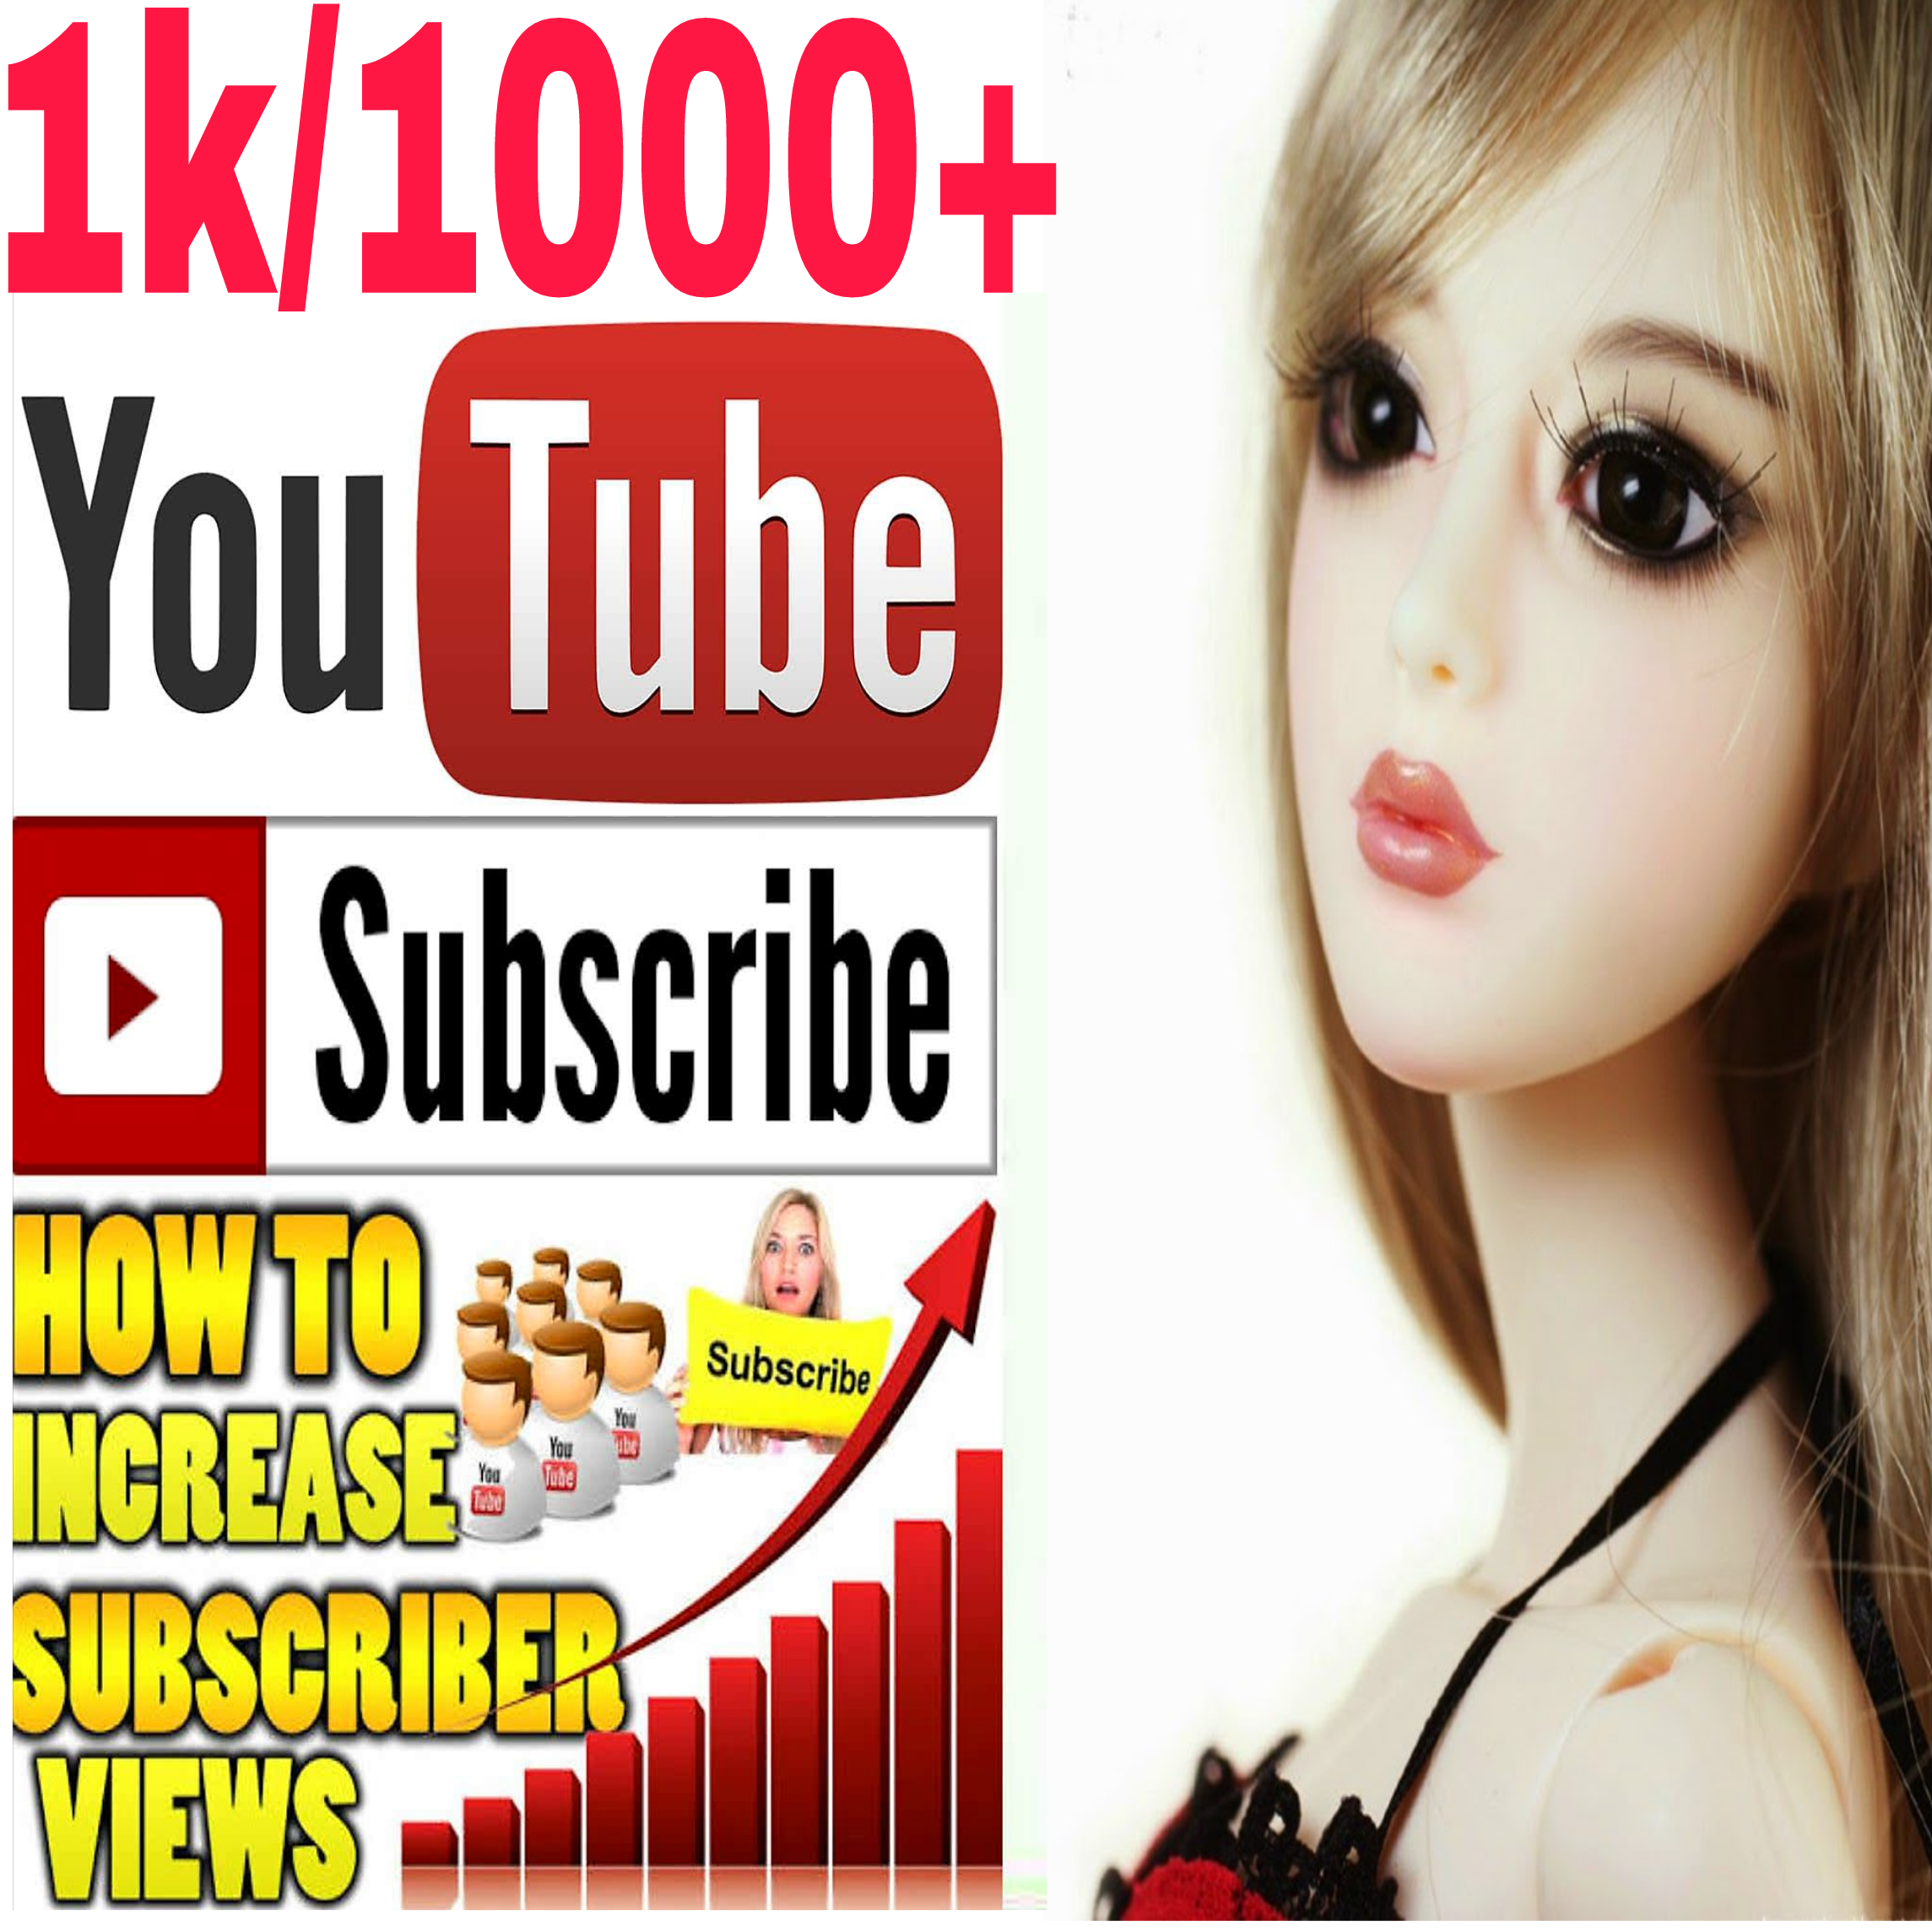 Guaranteed Non-Drop manually 1050+channel Subs very fast in 2-4 hours